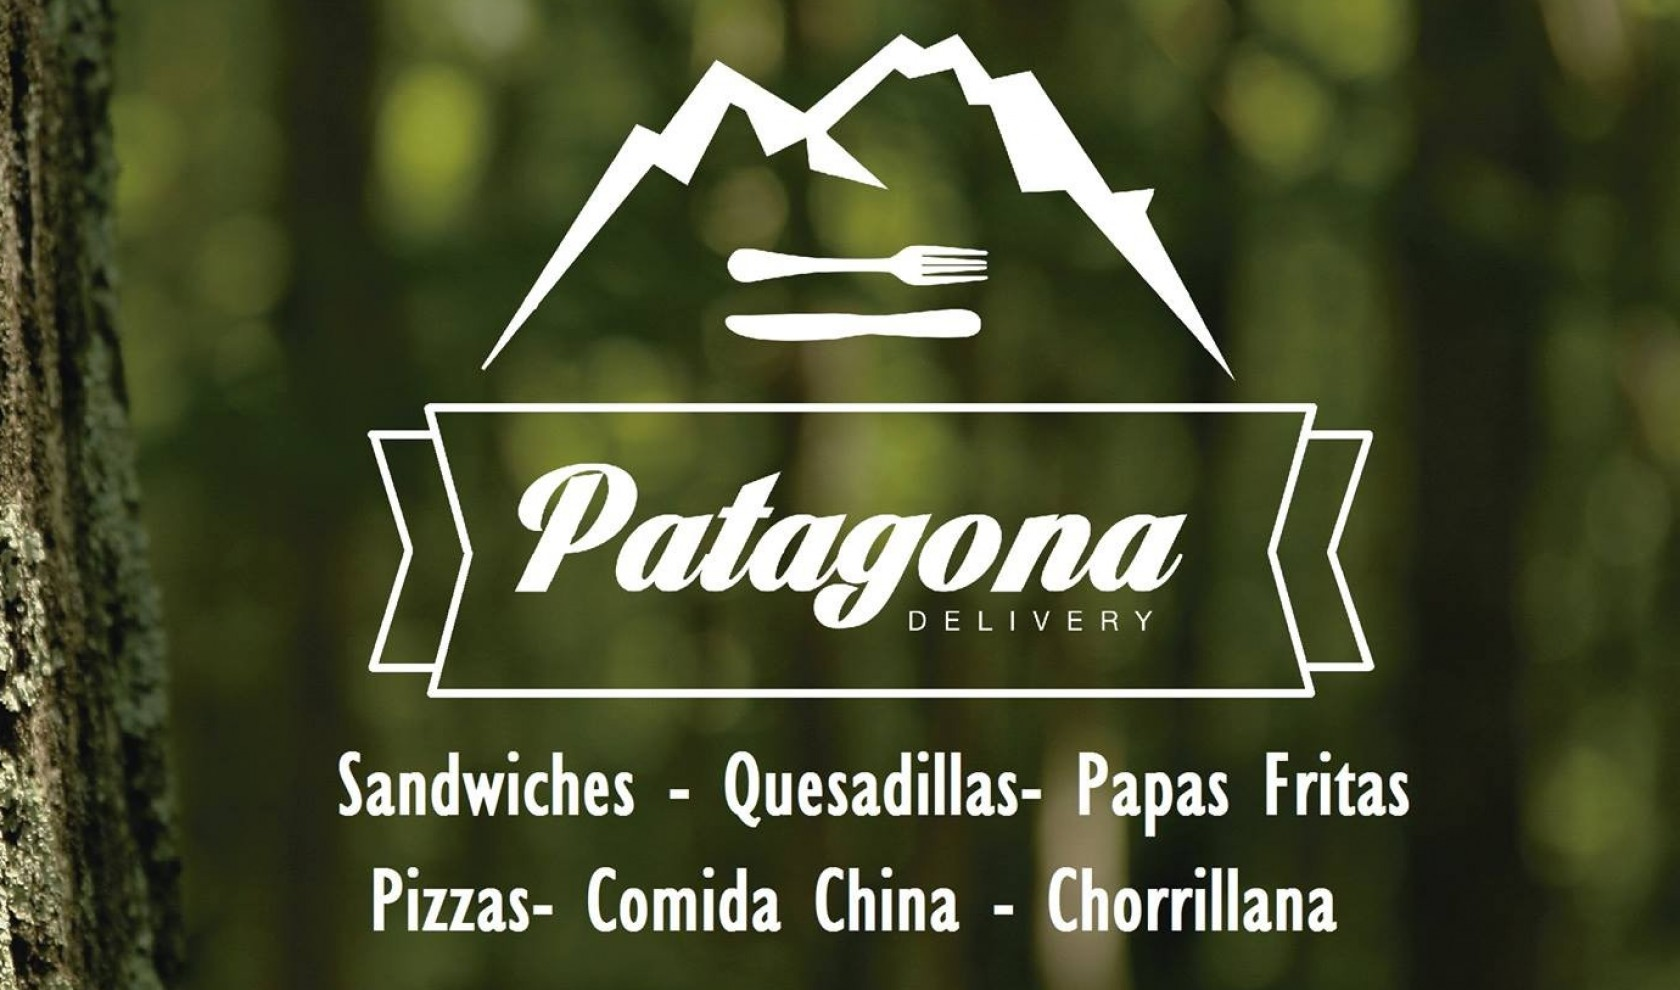 PATAGONA BAR RESTAURANT